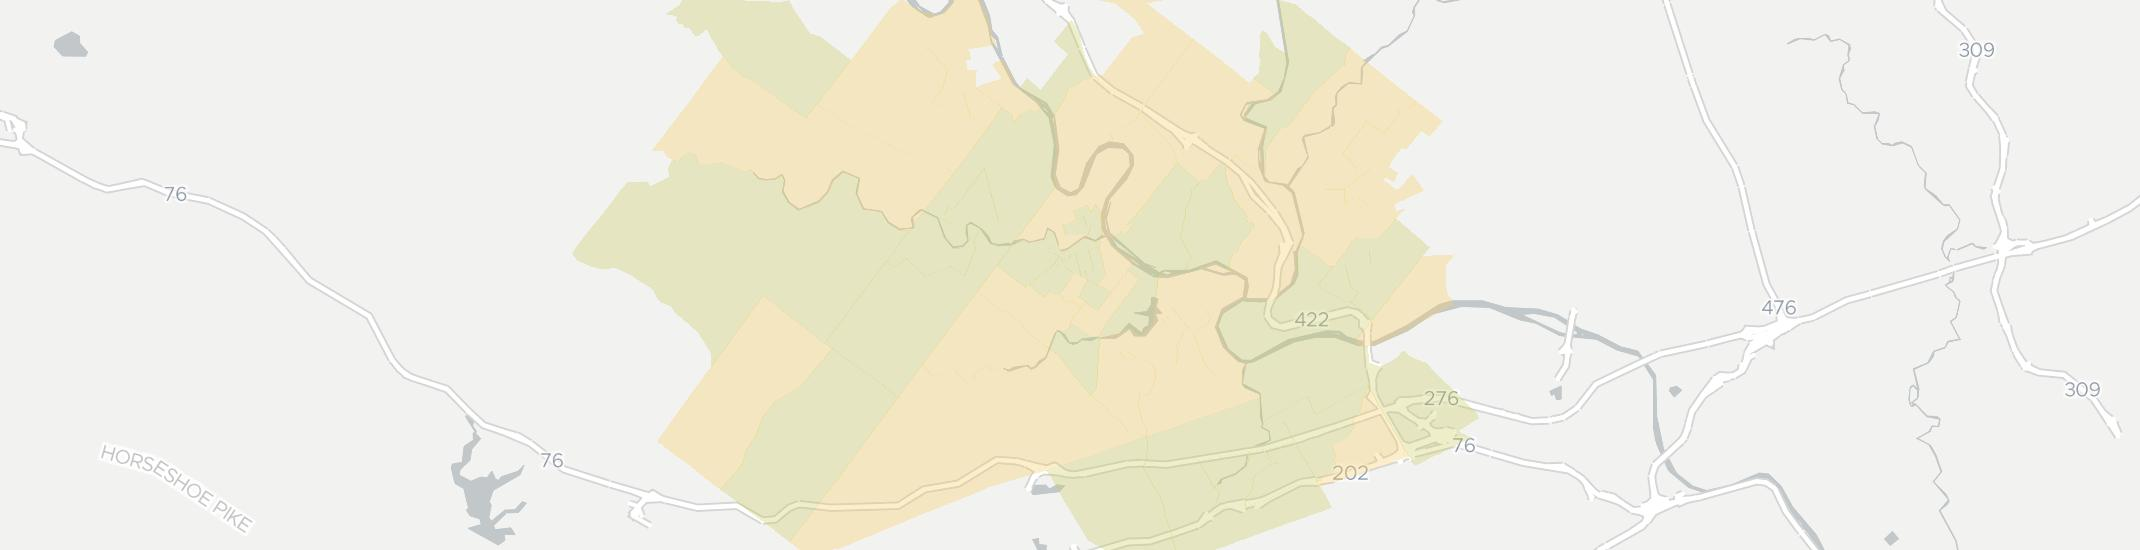 Phoenixville Internet Competition Map. Click for interactive map.